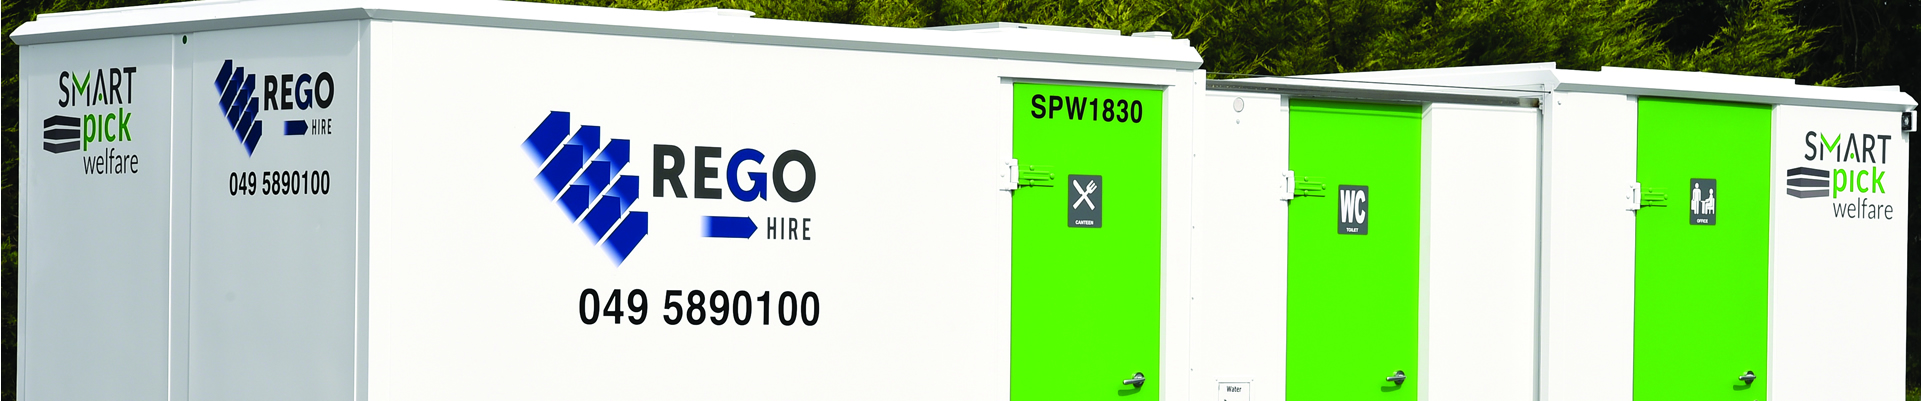 Rego Hire, Smart Pick Welfare